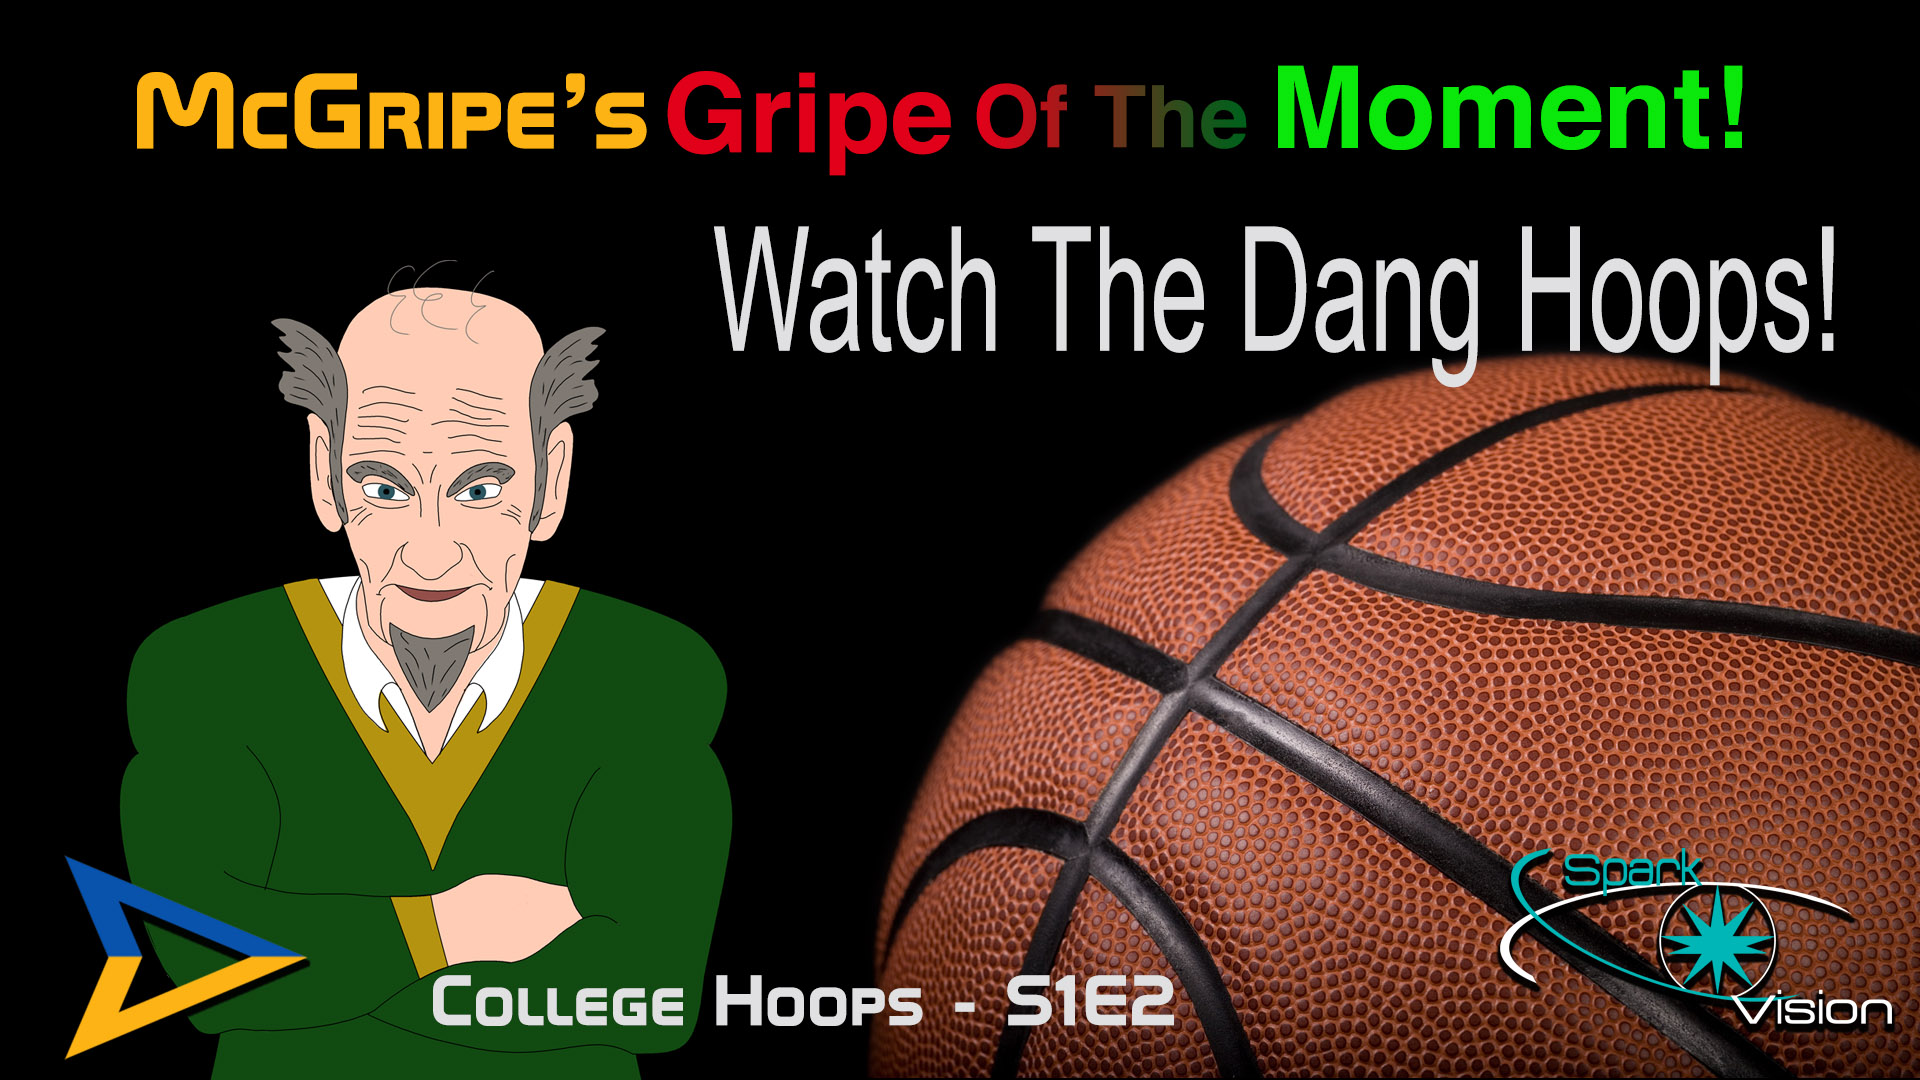 McGripe – College Hoops – S1E2